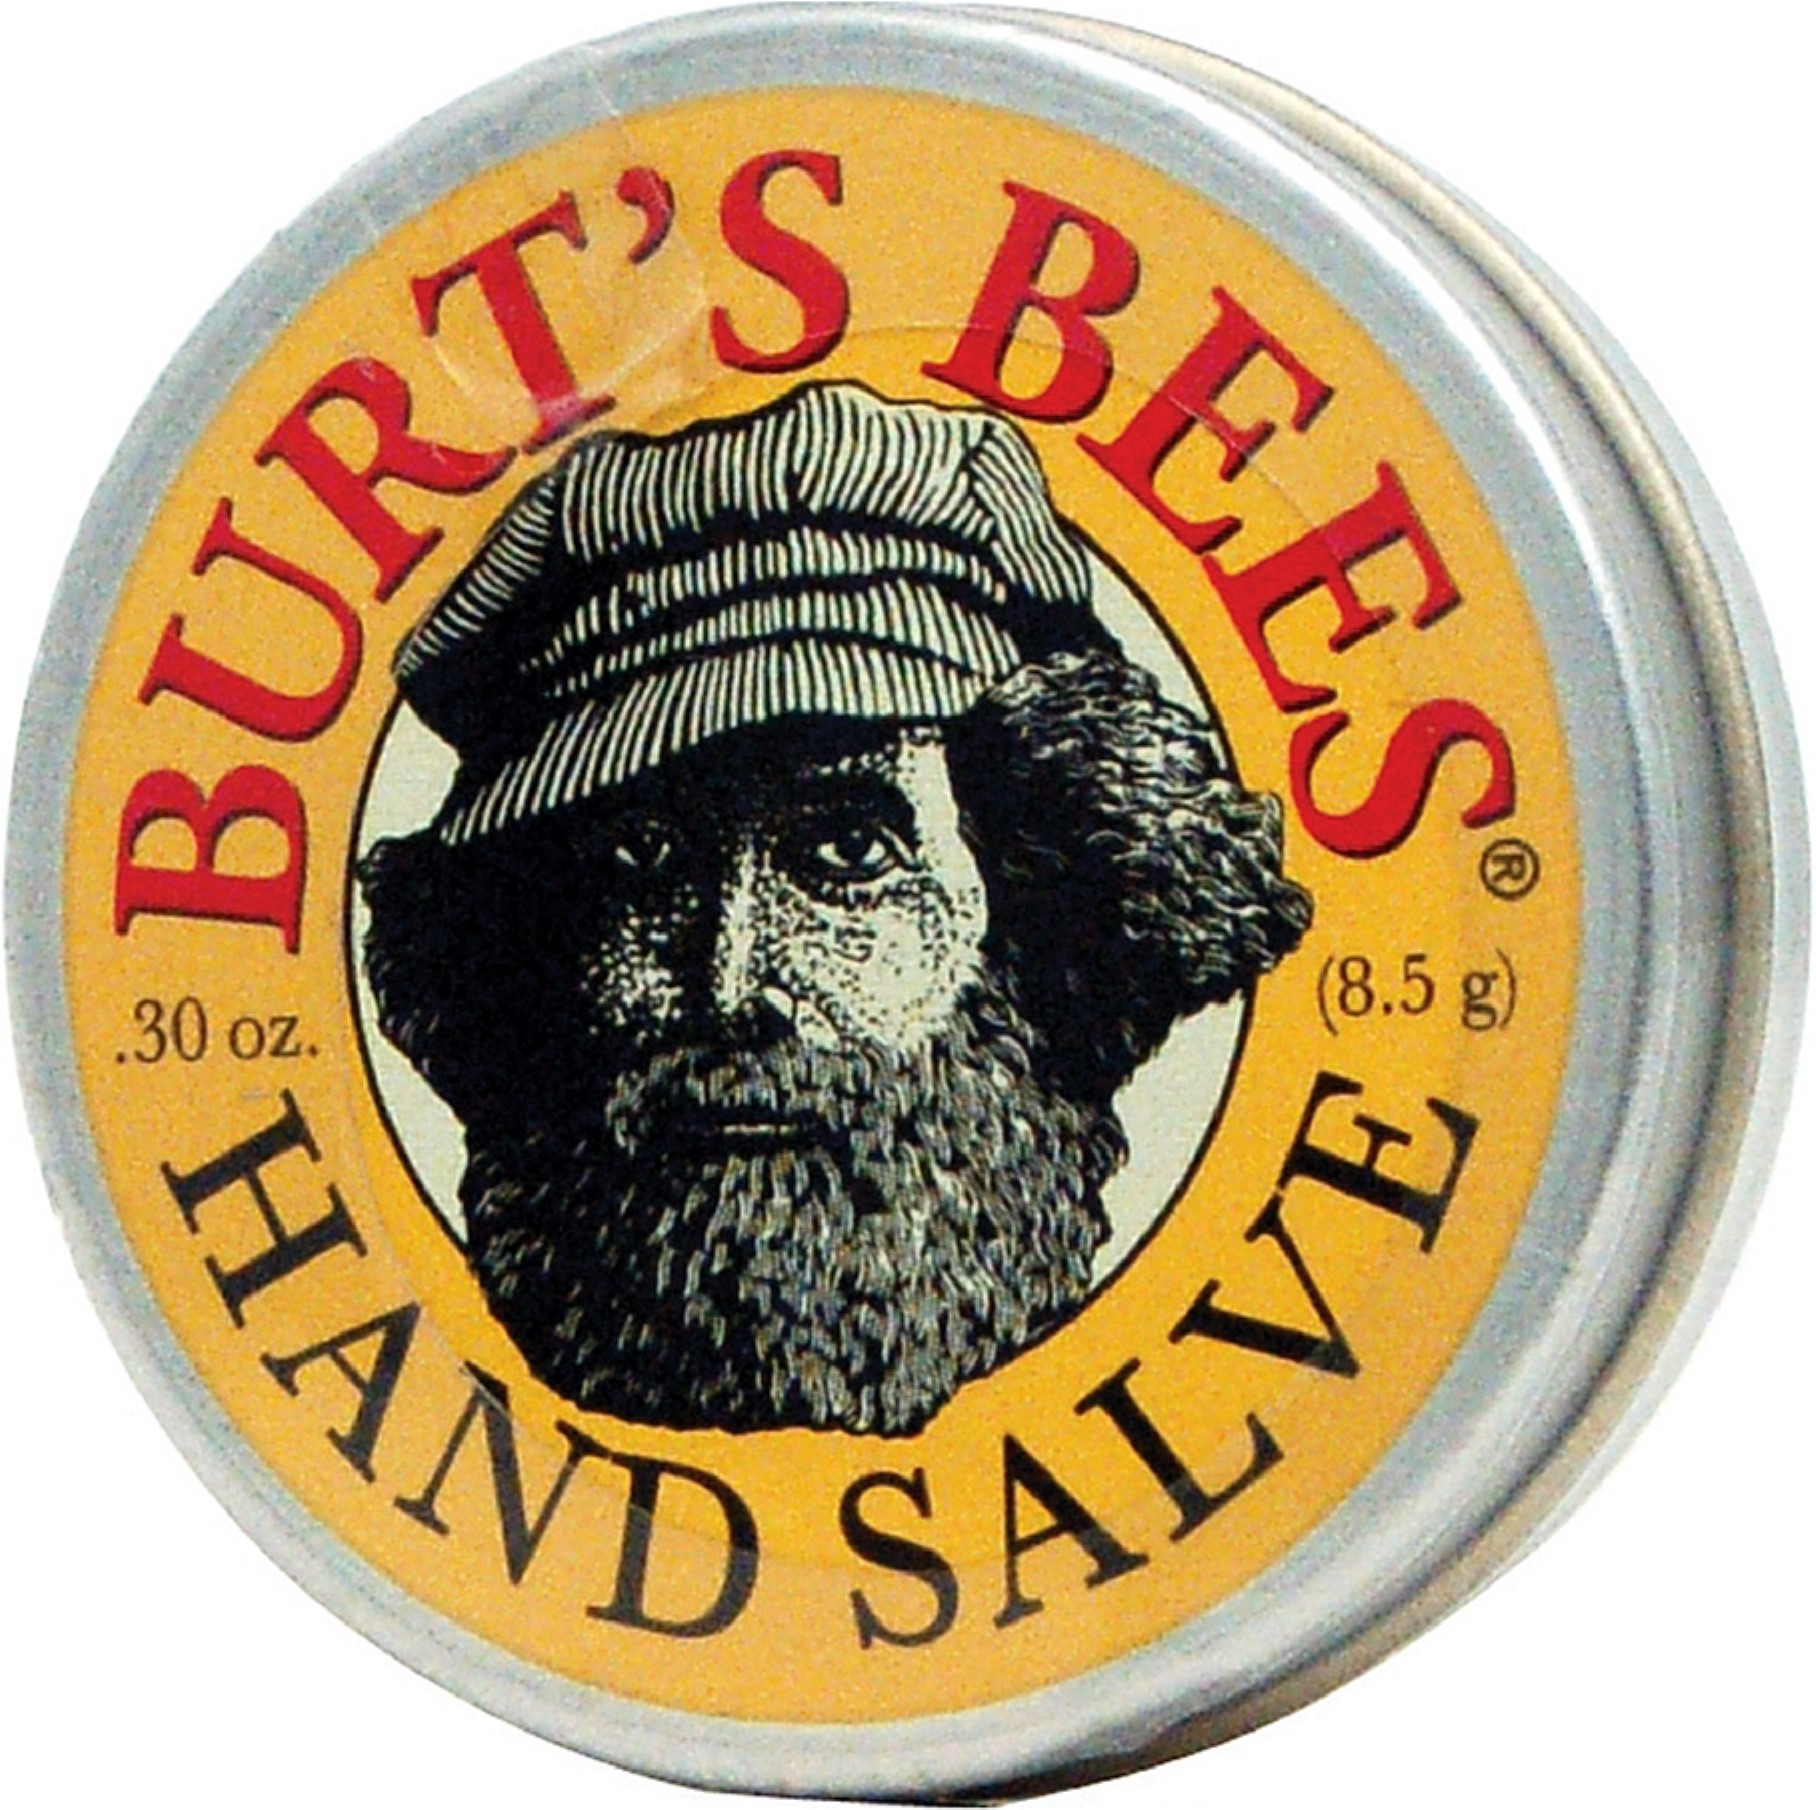 Burt's Bees Mini Hand Salve 0.30 oz (Pack of 6)